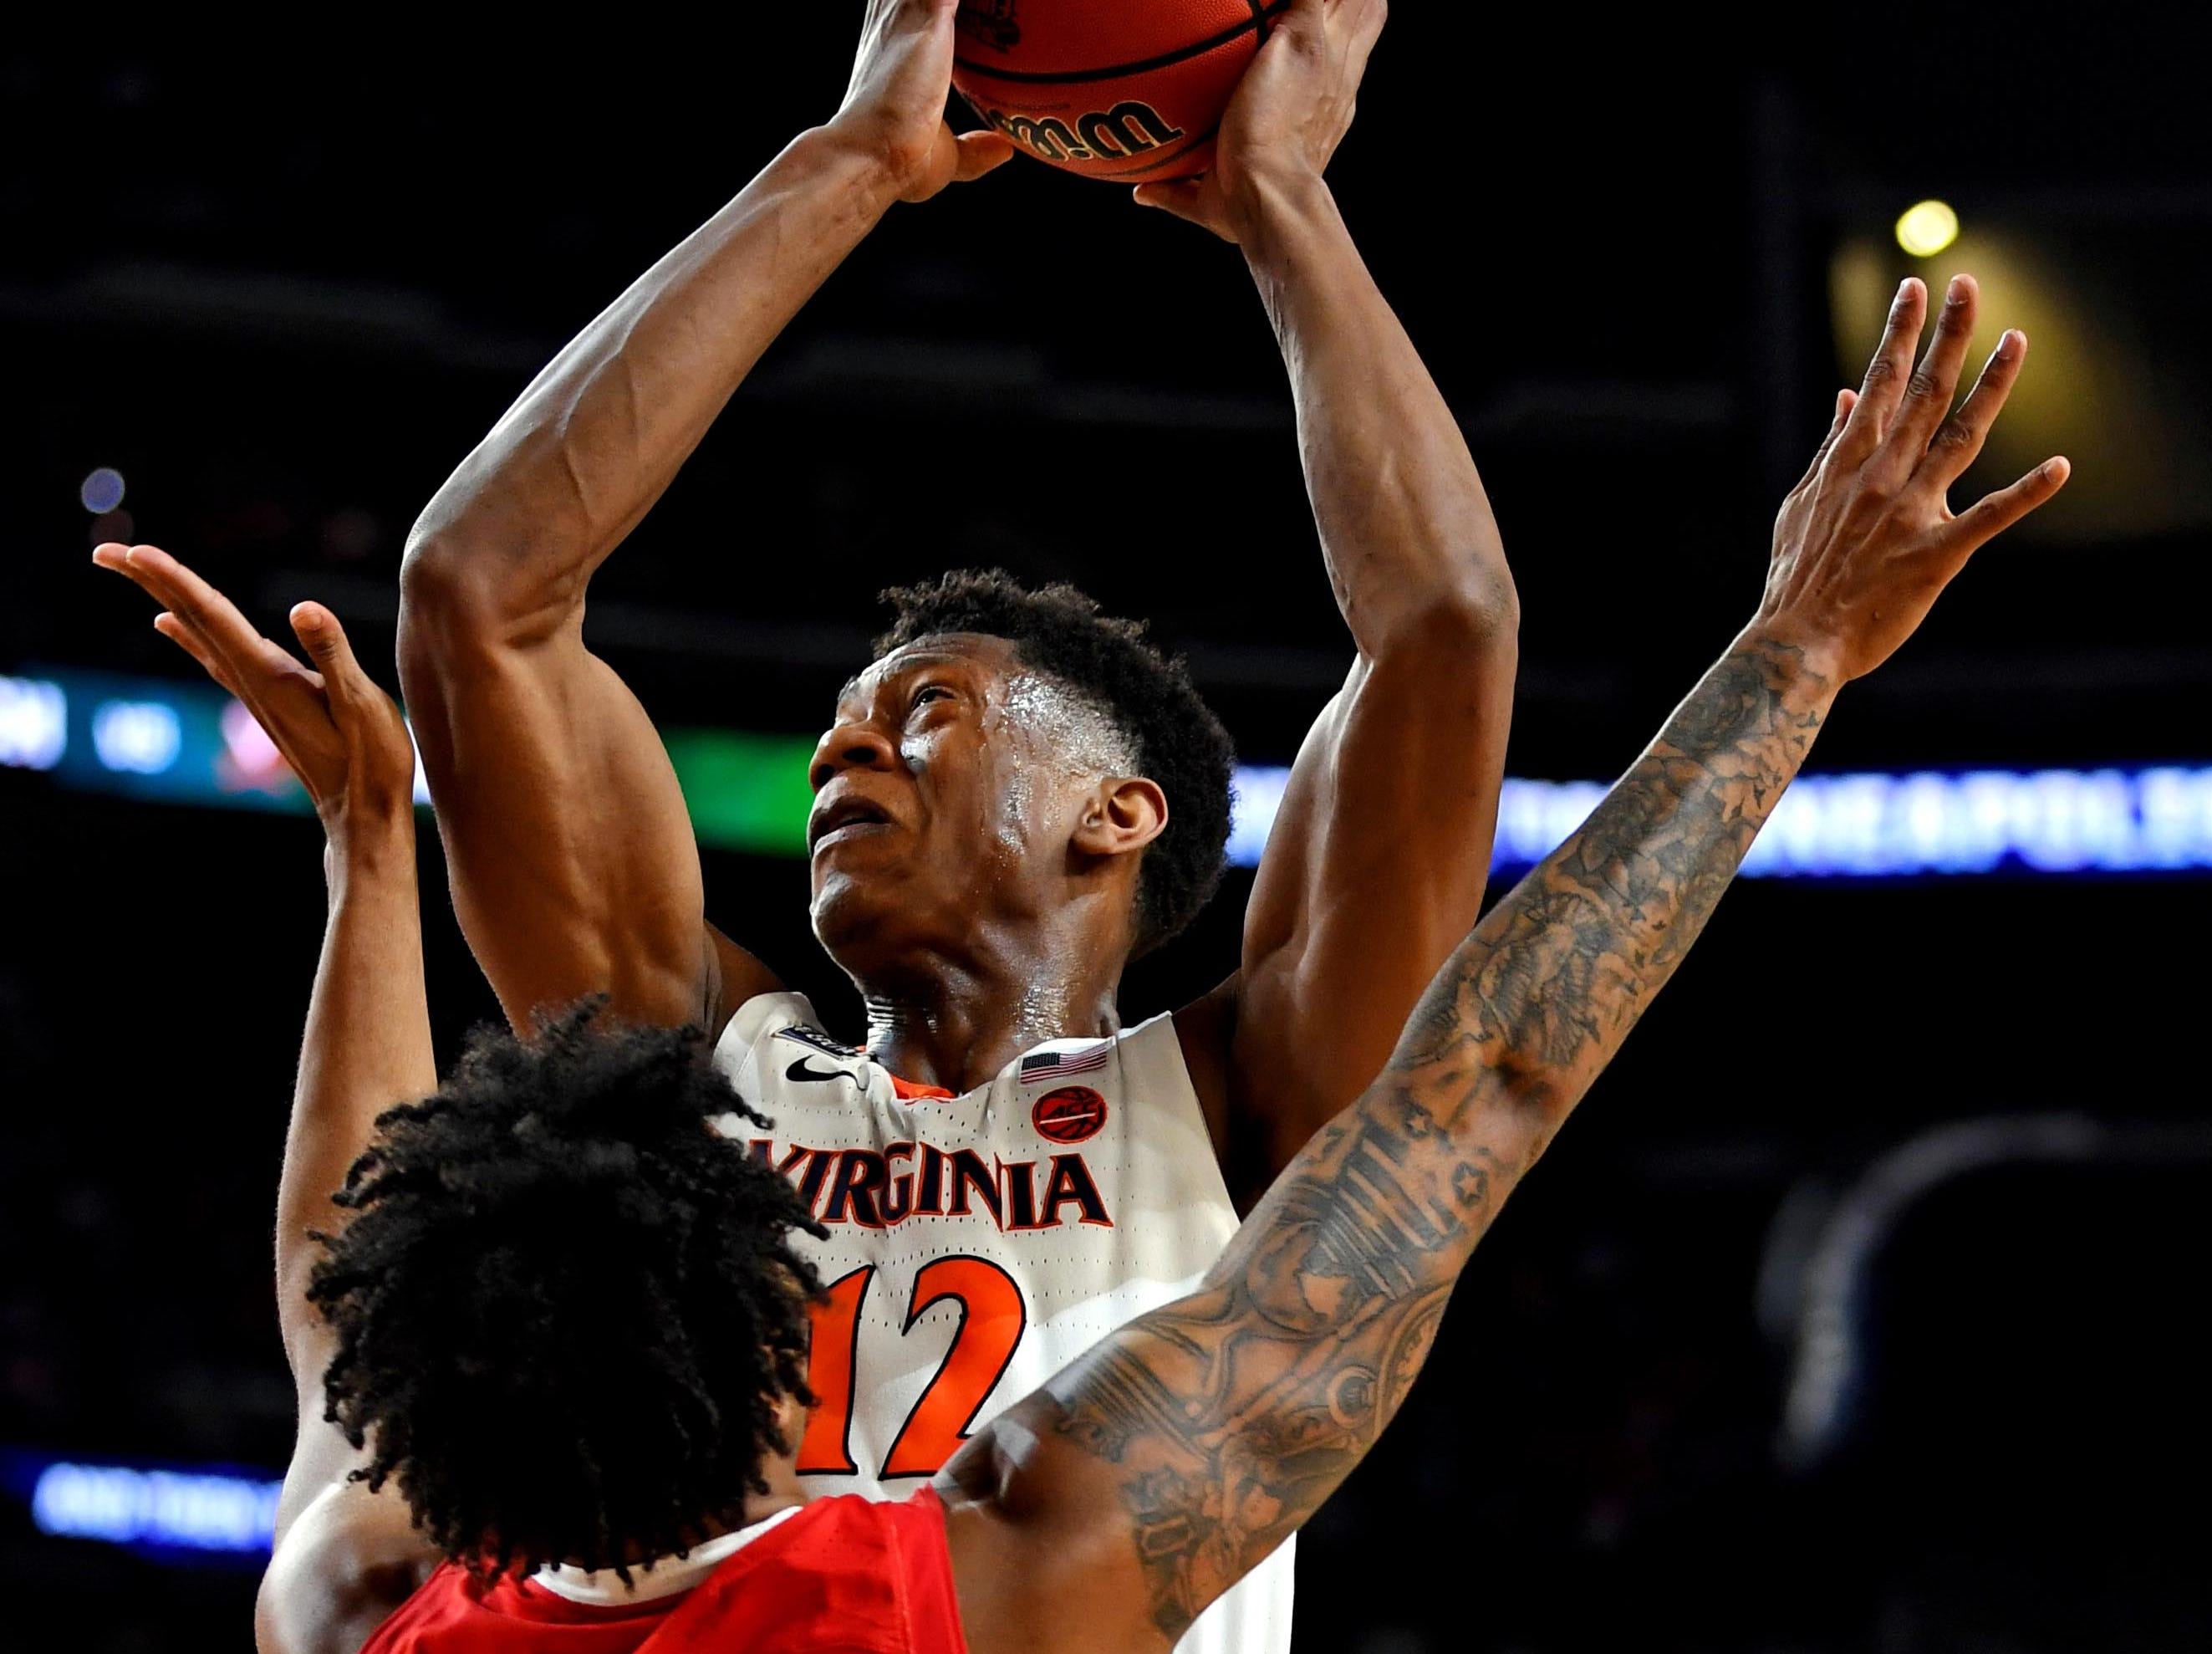 Apr 8, 2019; Minneapolis, MN, USA; Virginia Cavaliers guard De'Andre Hunter (12) drives to the basket against Texas Tech Red Raiders guard Kyler Edwards (0) during the first half in the championship game of the 2019 men's Final Four at US Bank Stadium. Mandatory Credit: Bob Donnan-USA TODAY Sports